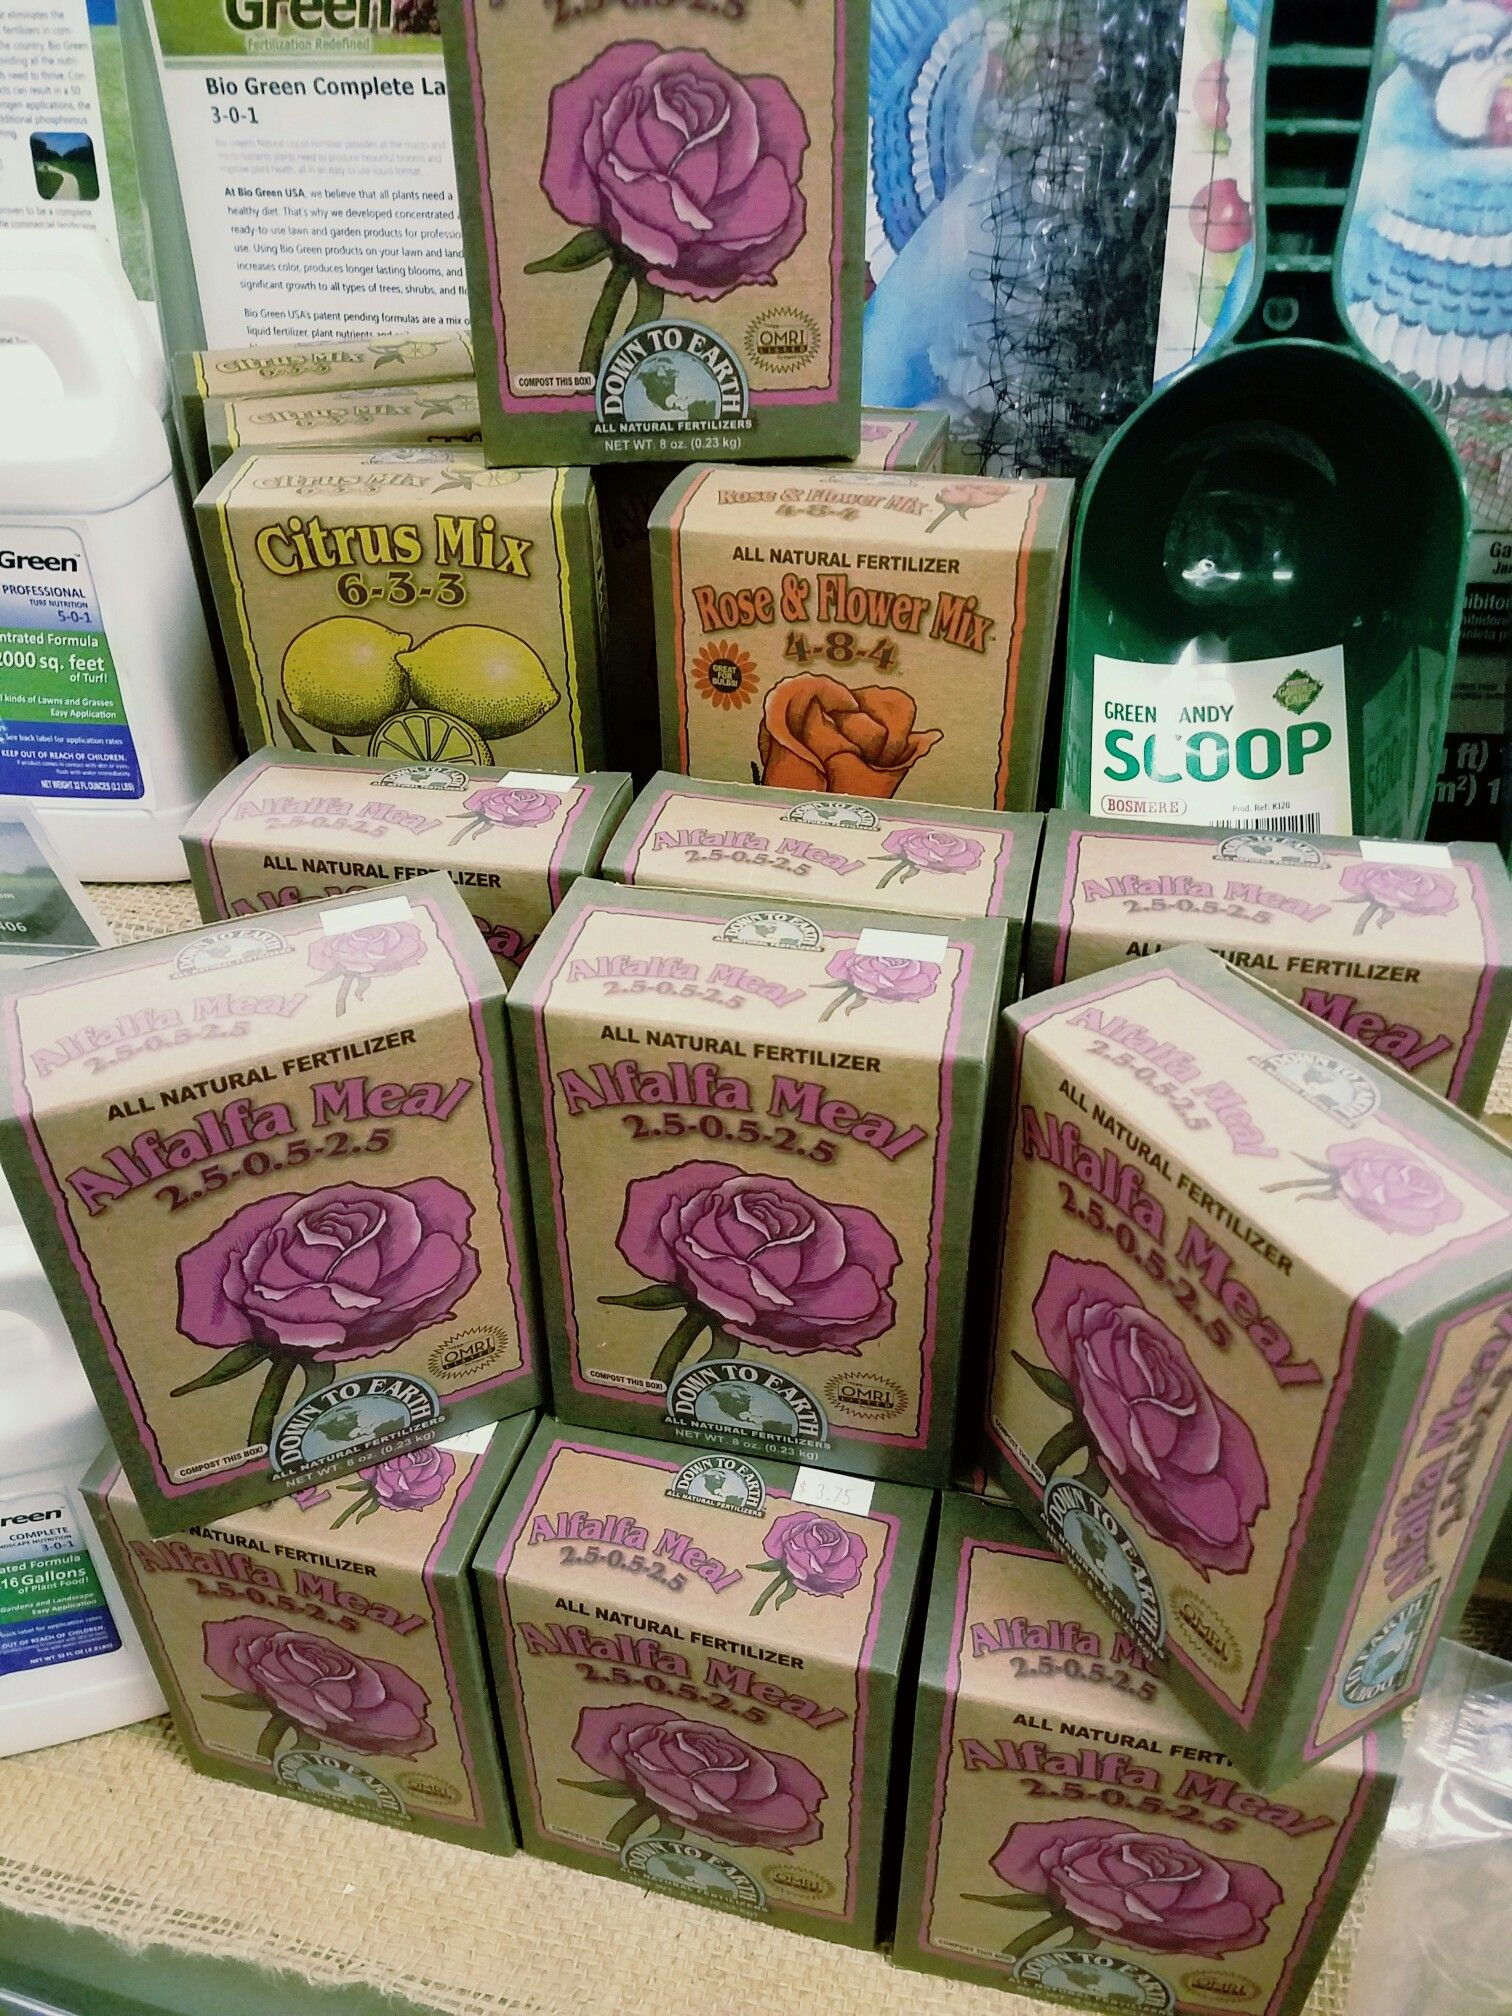 Alfalfa Meal for exceptional plant nutrients! | The Garden Shop ...